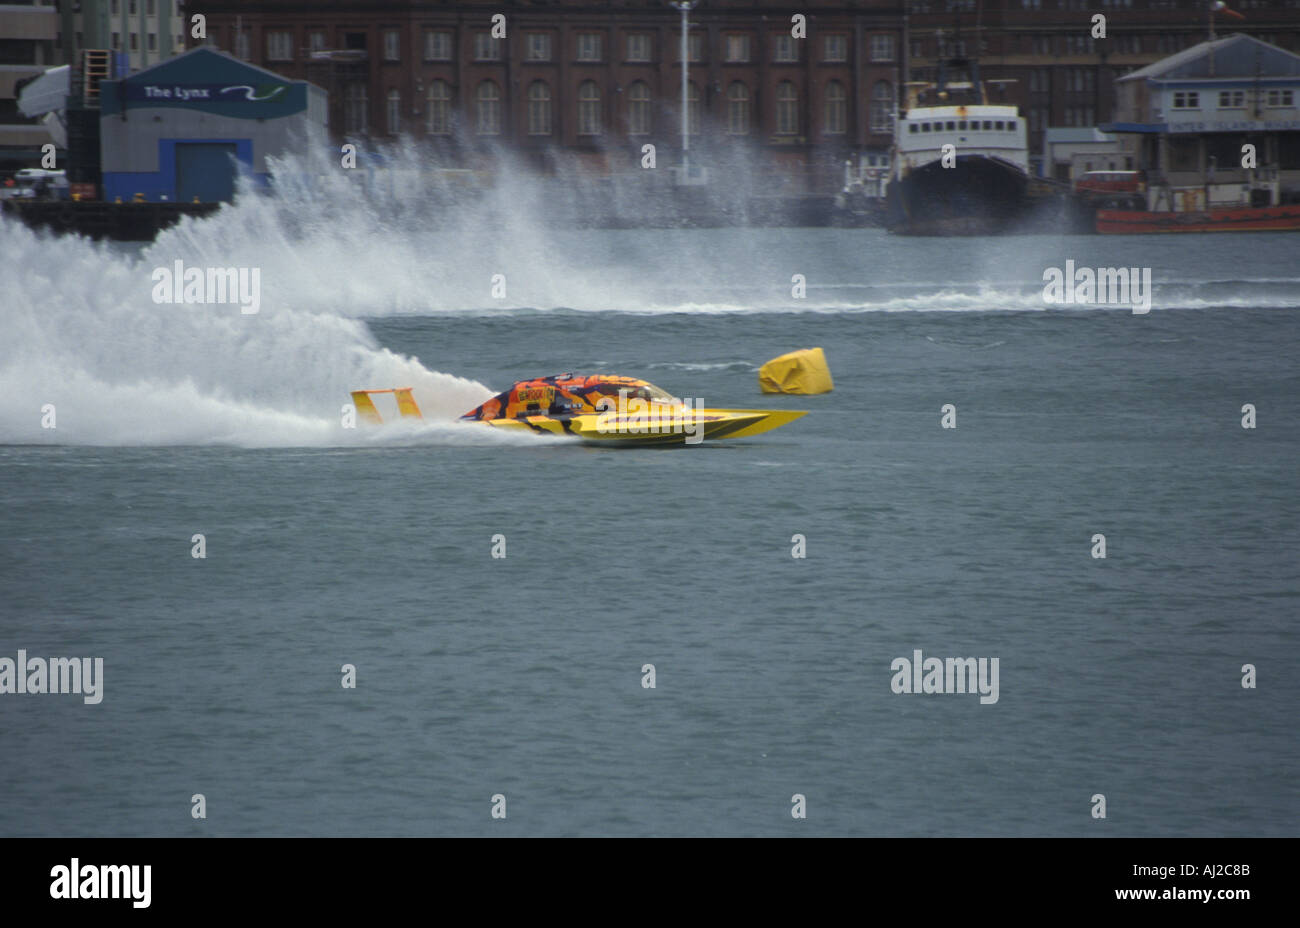 Hydroplane Race Stock Photos & Hydroplane Race Stock Images